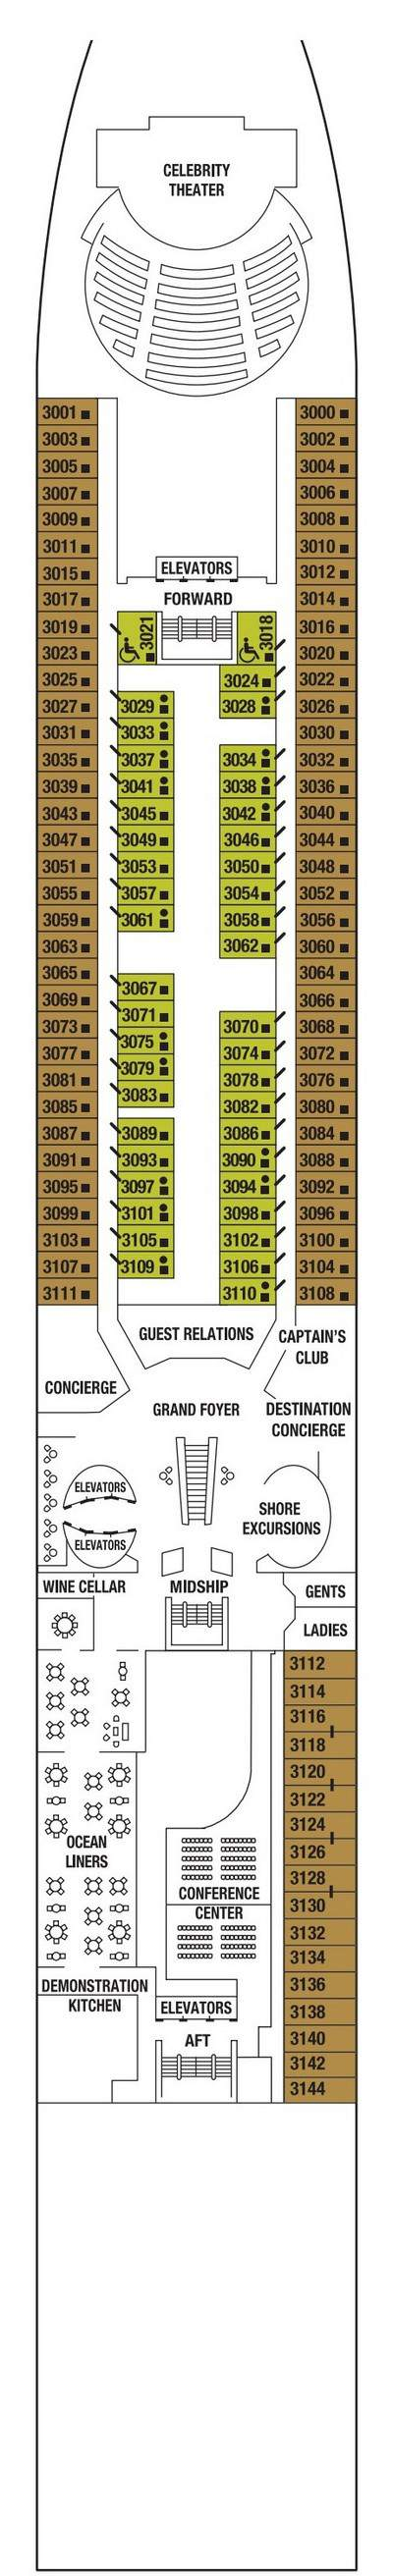 Celebrity Constellation Plaza Deck  layout